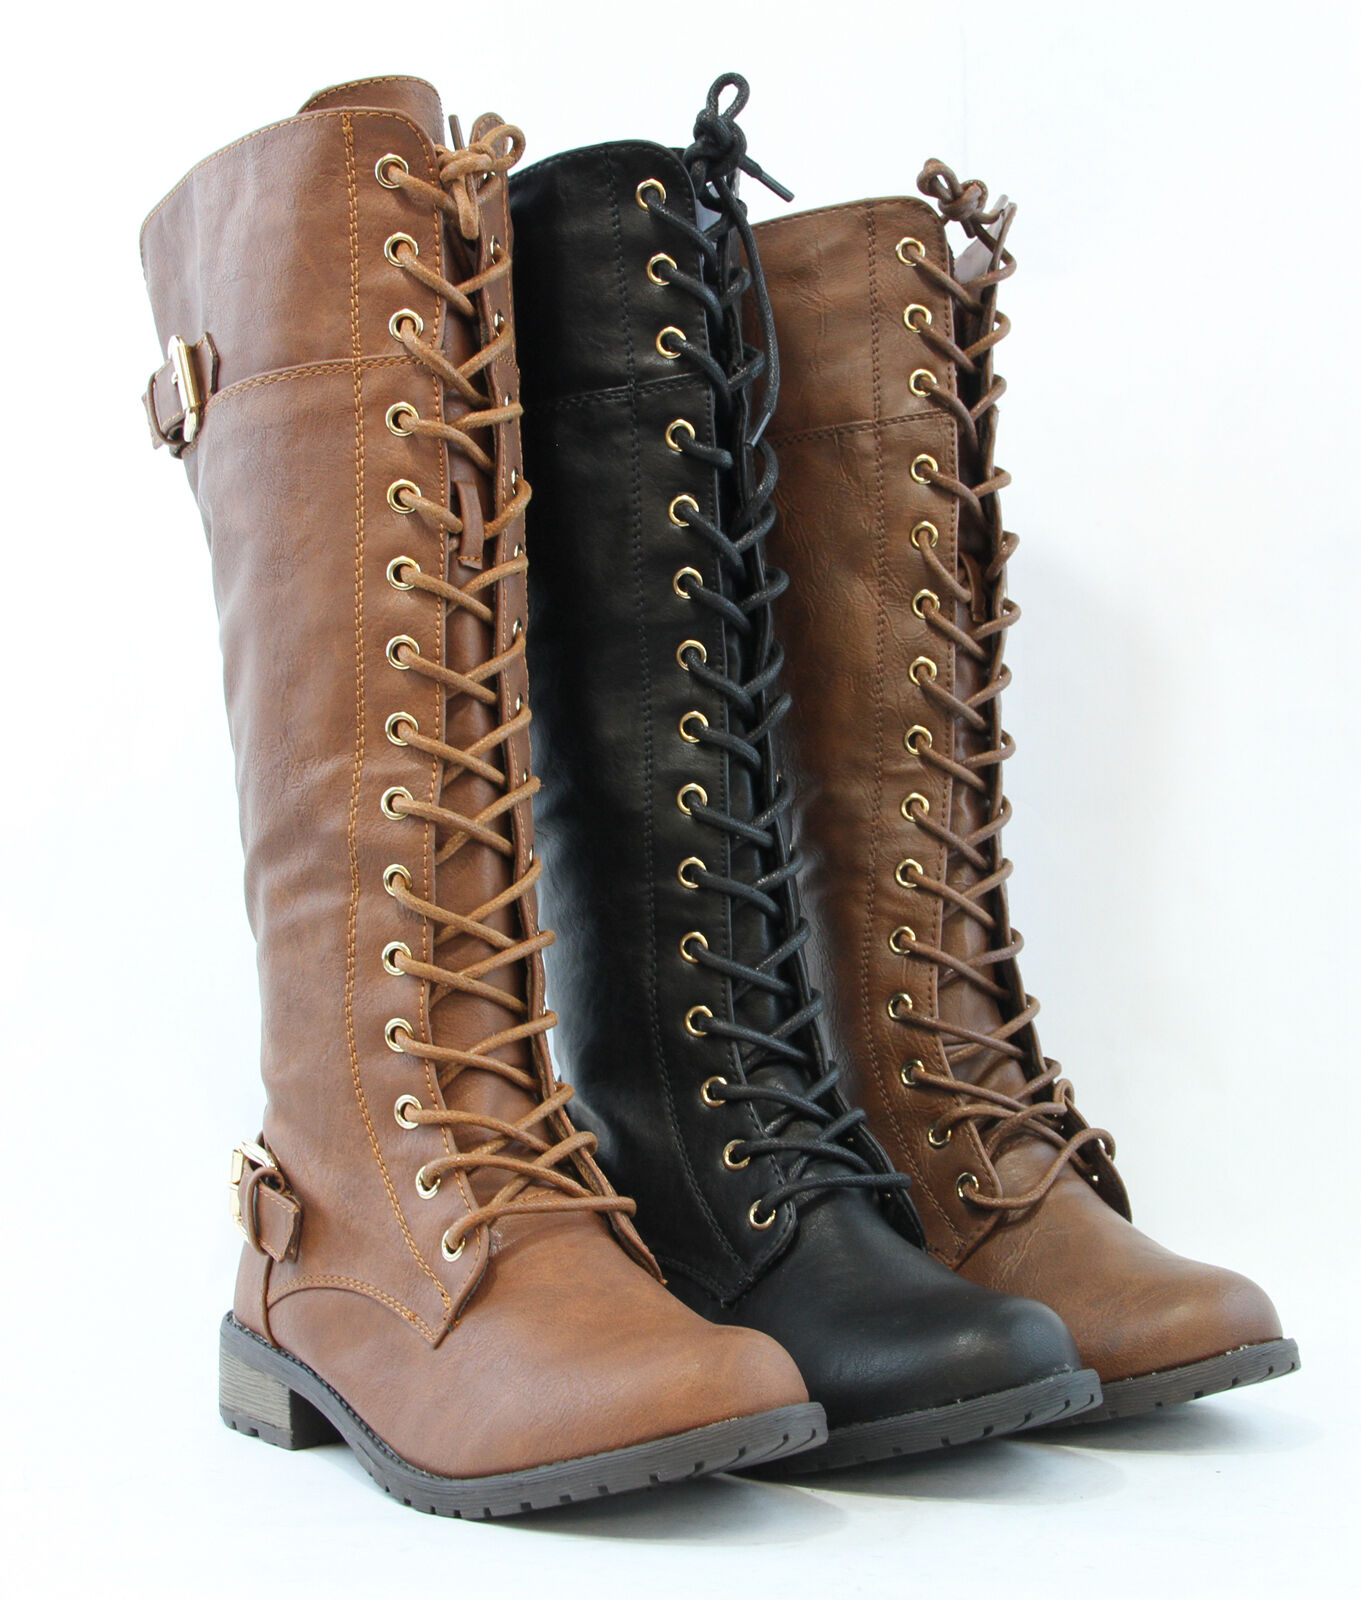 Women Knee High Lace Up Fashion Military Combat Boots Riding